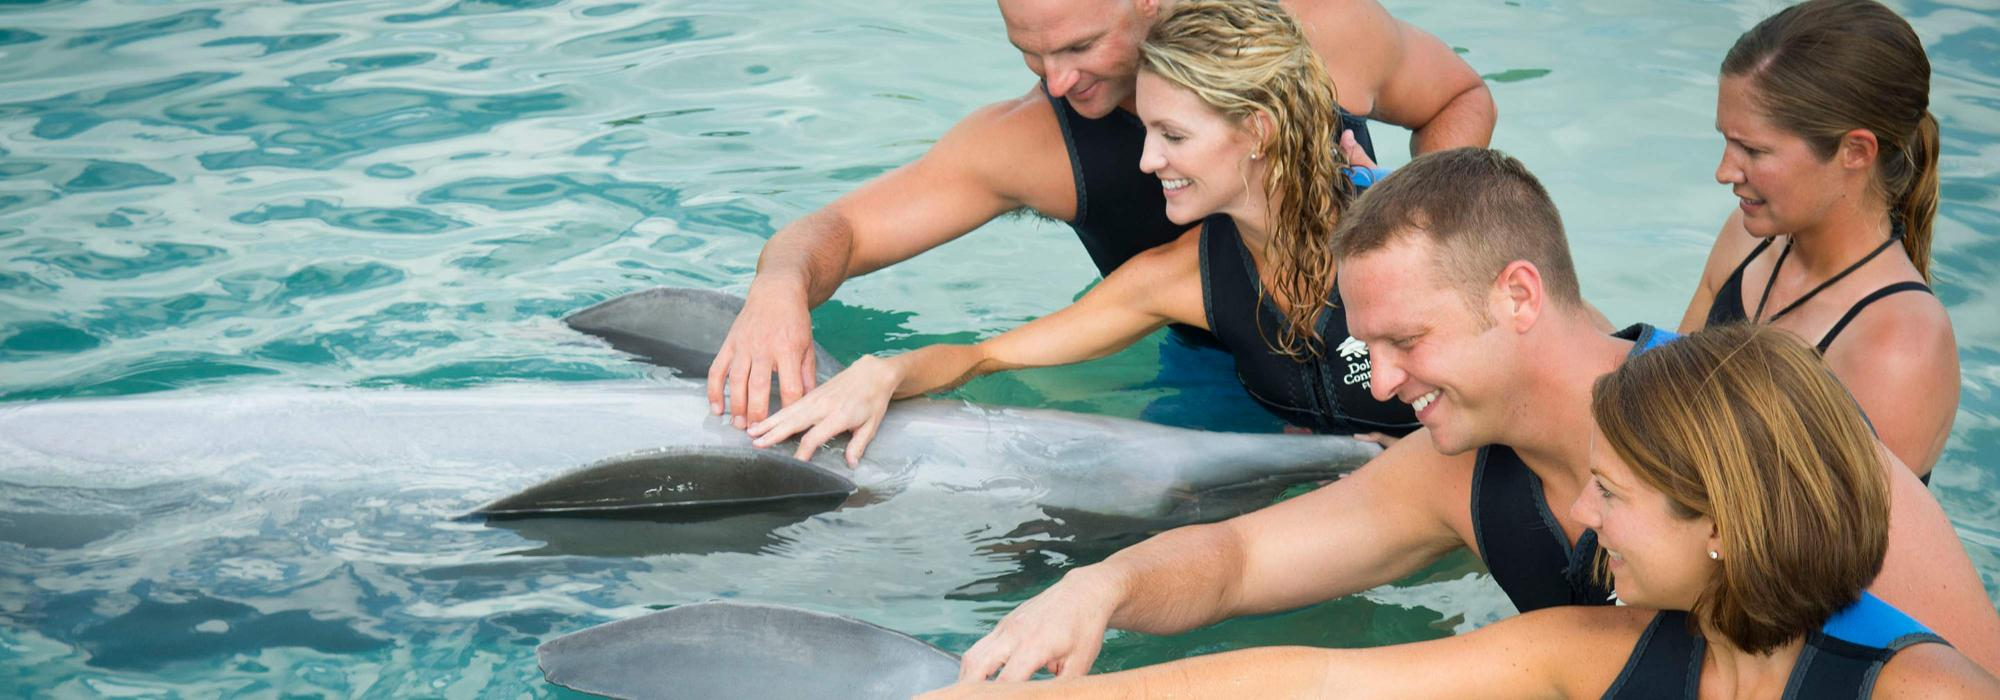 The Dolphin Connection at Hawks Cay Resort